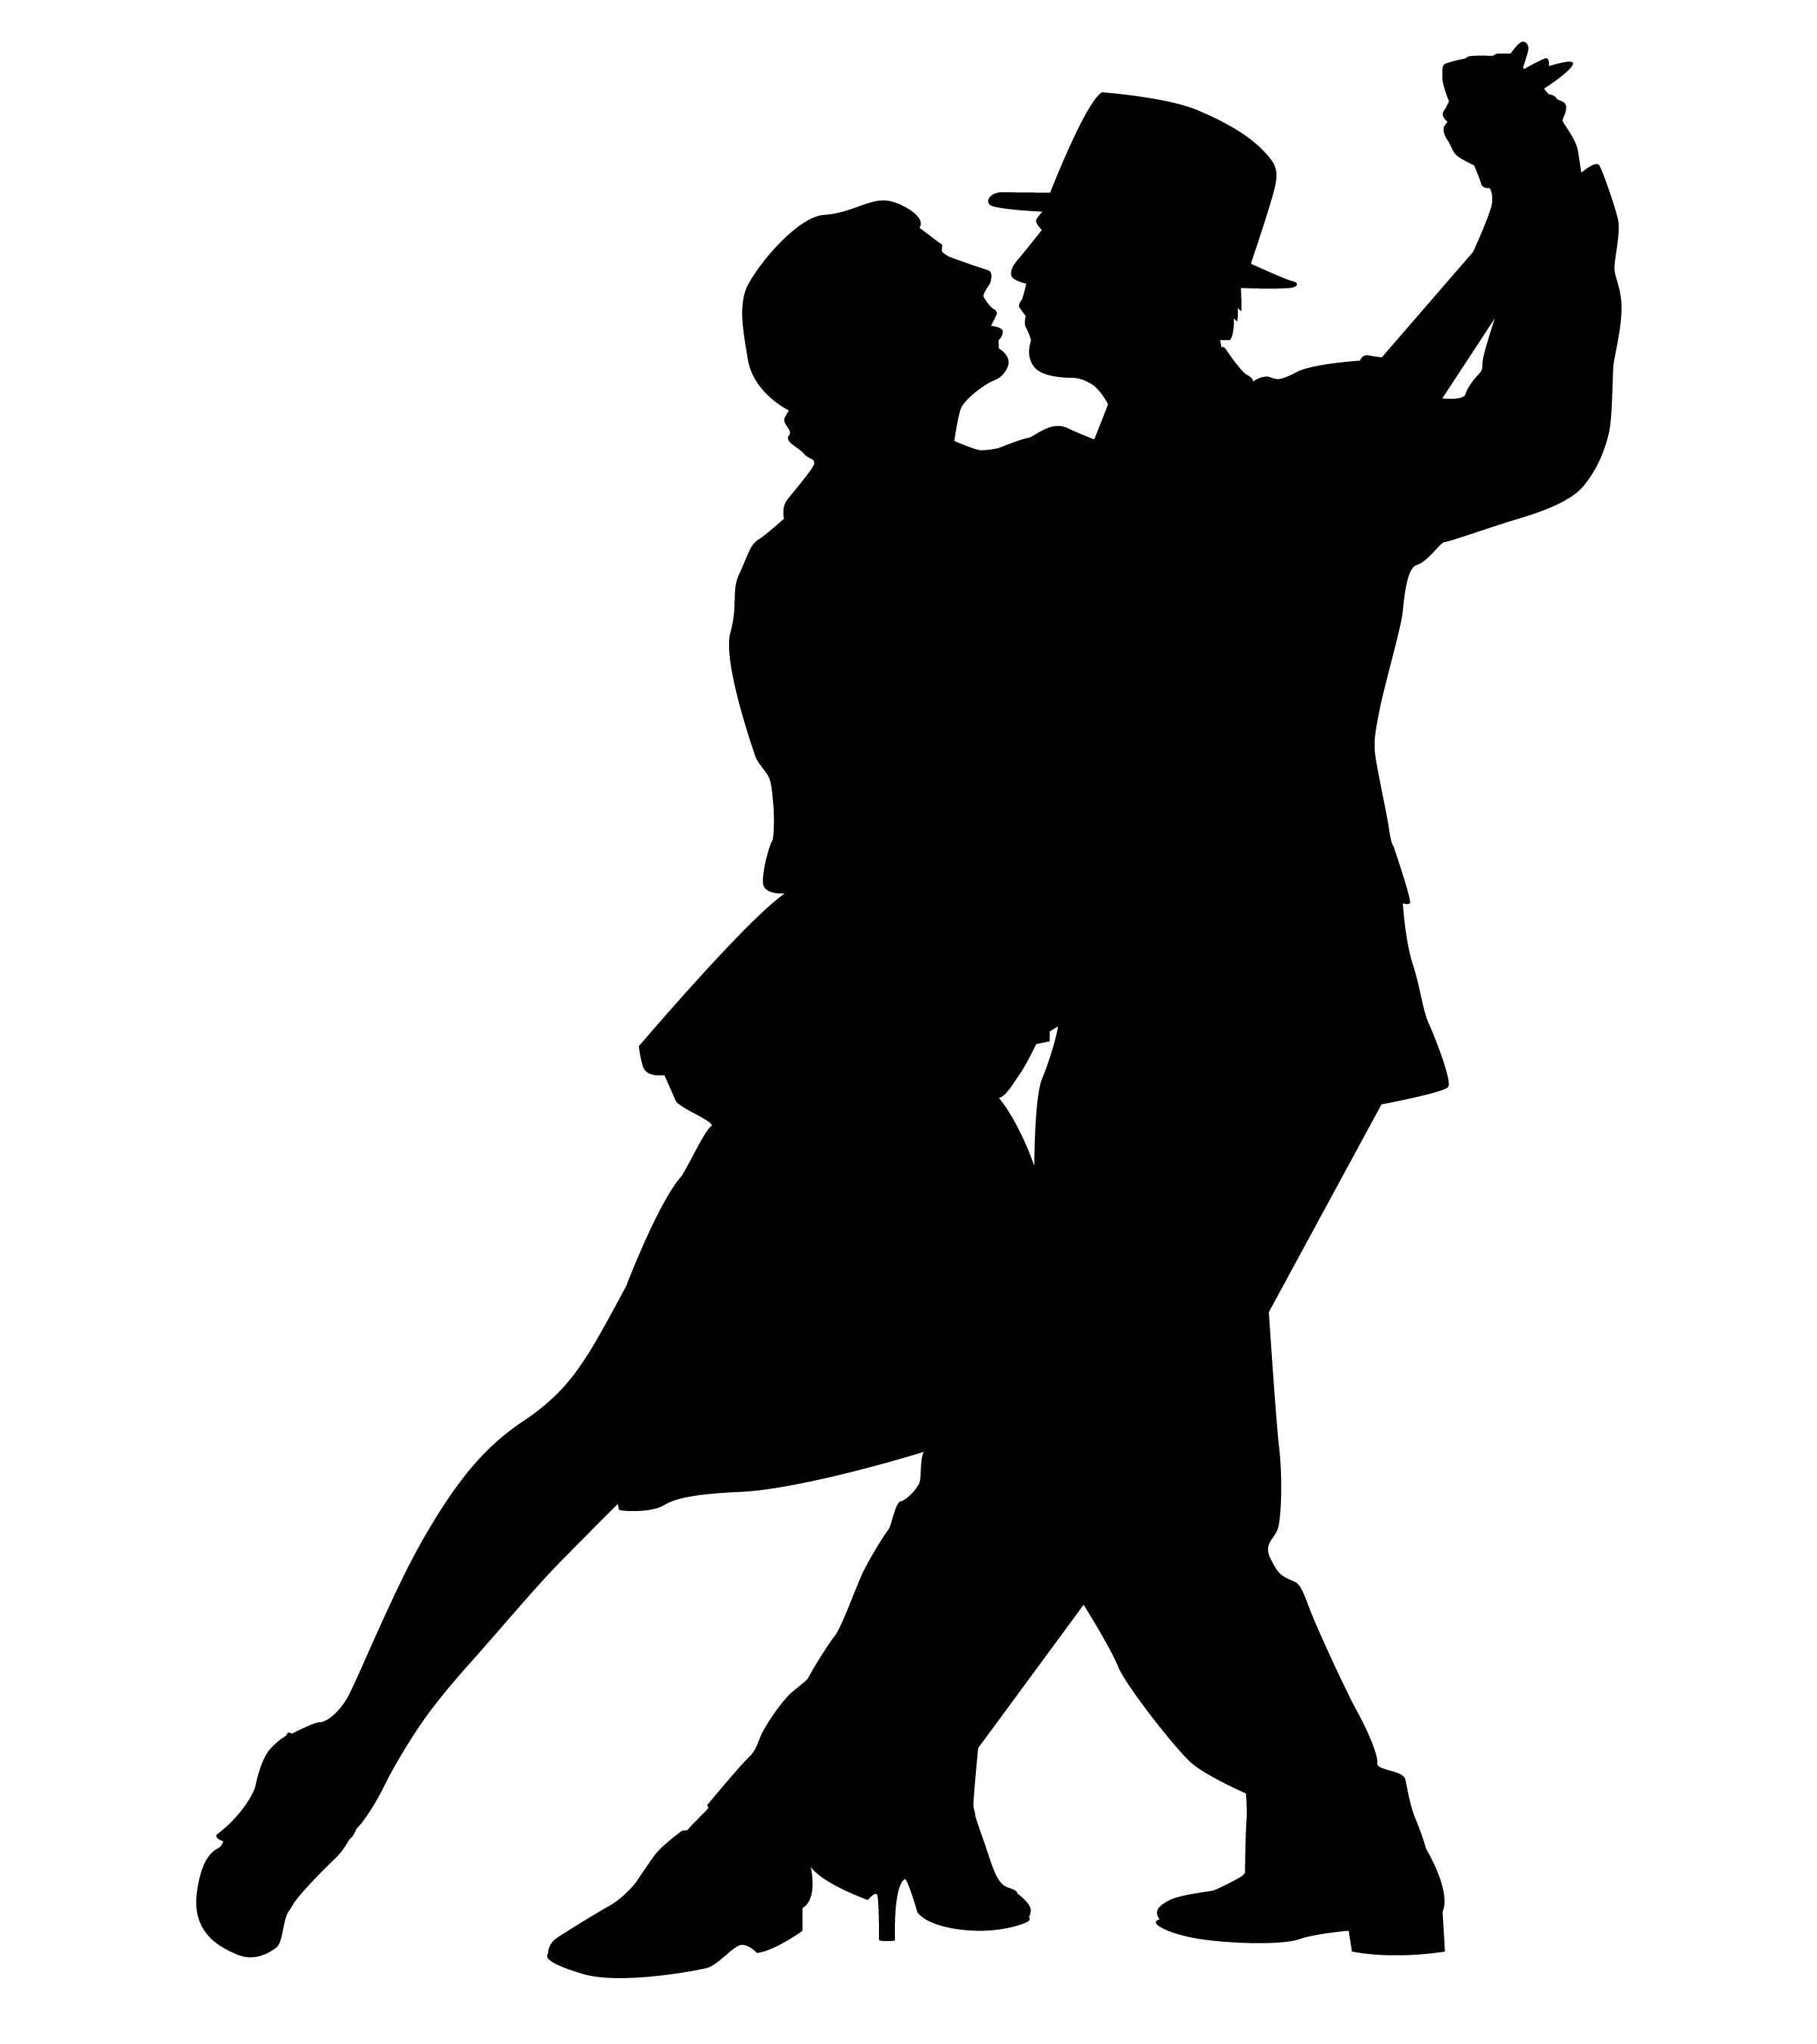 We Are Known As The Be Smooth Urban Ballroom And Line Dance Crew Dancer Silhouette Dancing Couple Silhouette Couple Dancing